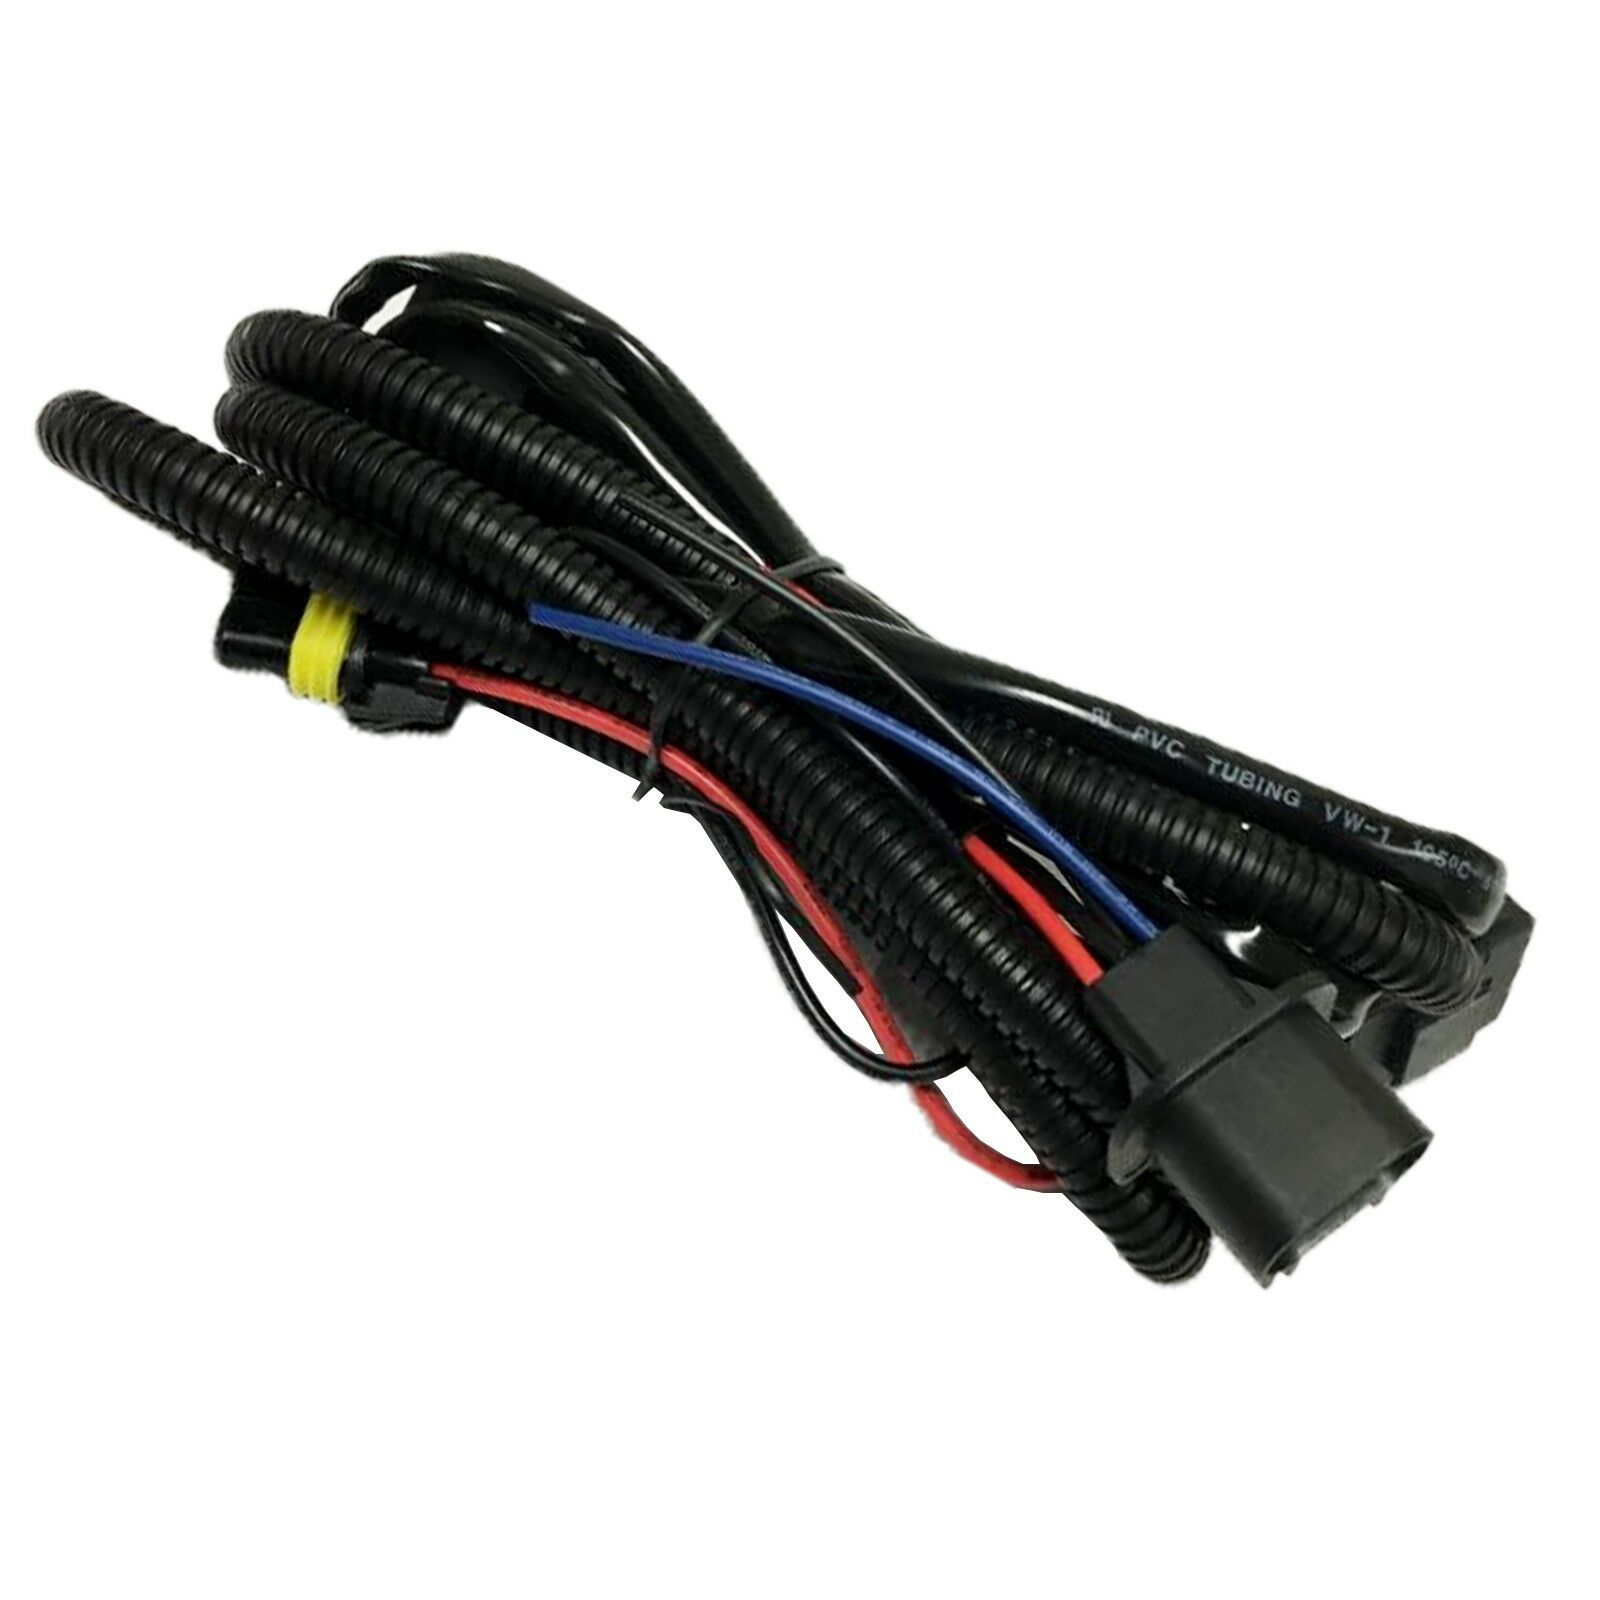 relay wiring harness for high low beam hid xenon kit for 9004 9007 please note that this relay is not suitable for bi xenon conversion kit this is for high low beam high halogen and low hid only